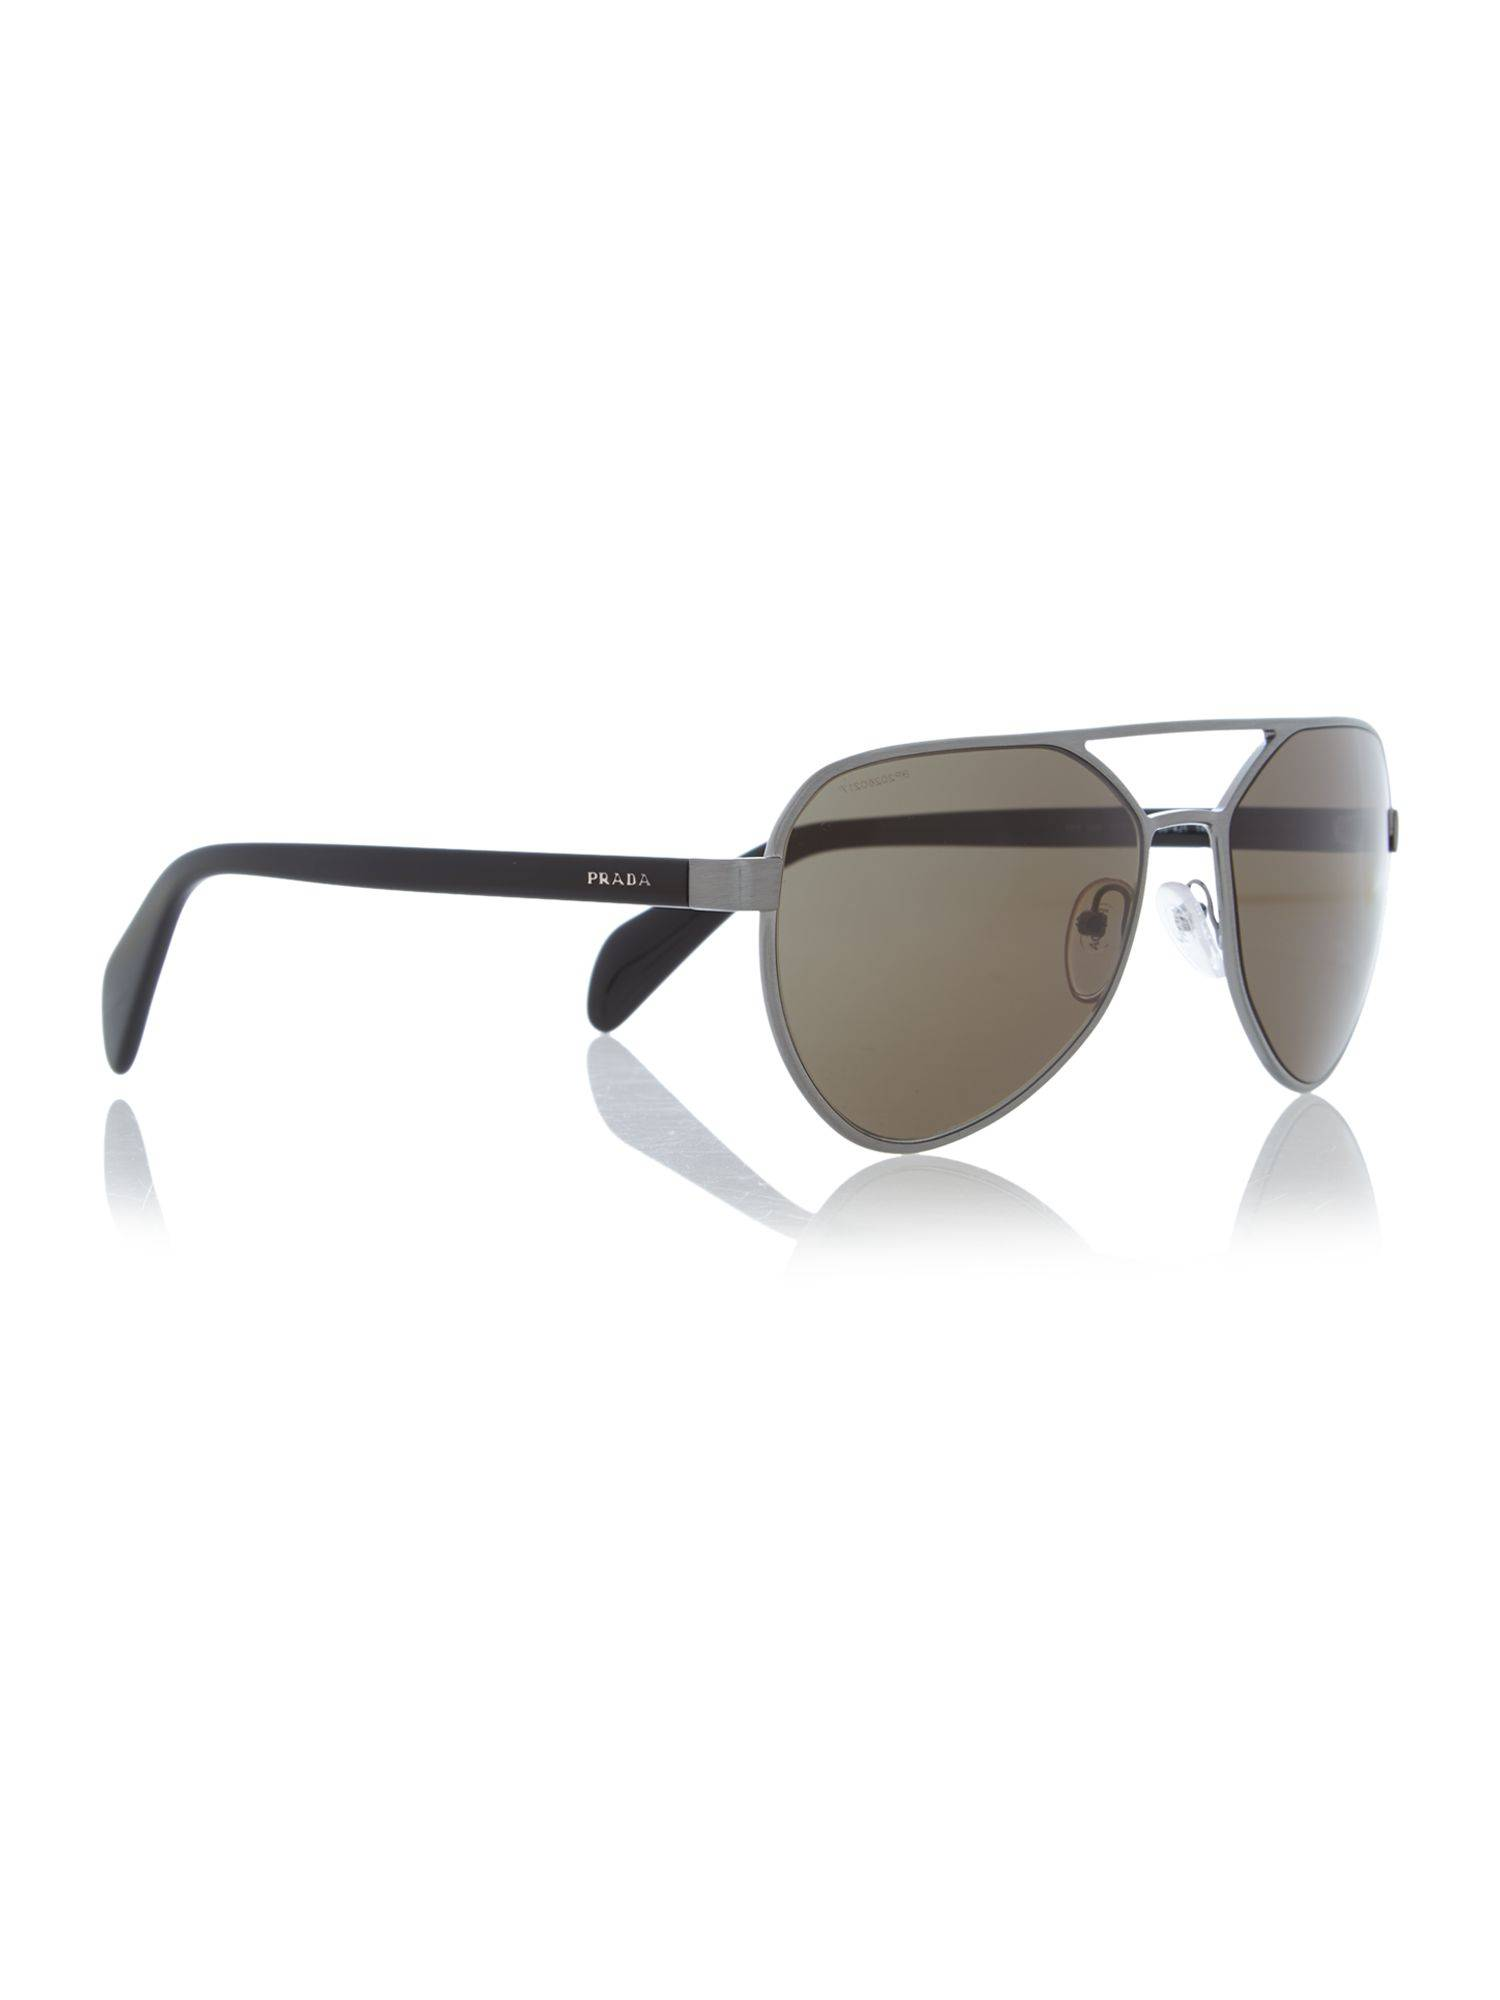 Prada Sunglasses PR 55RS aviator sunglasses